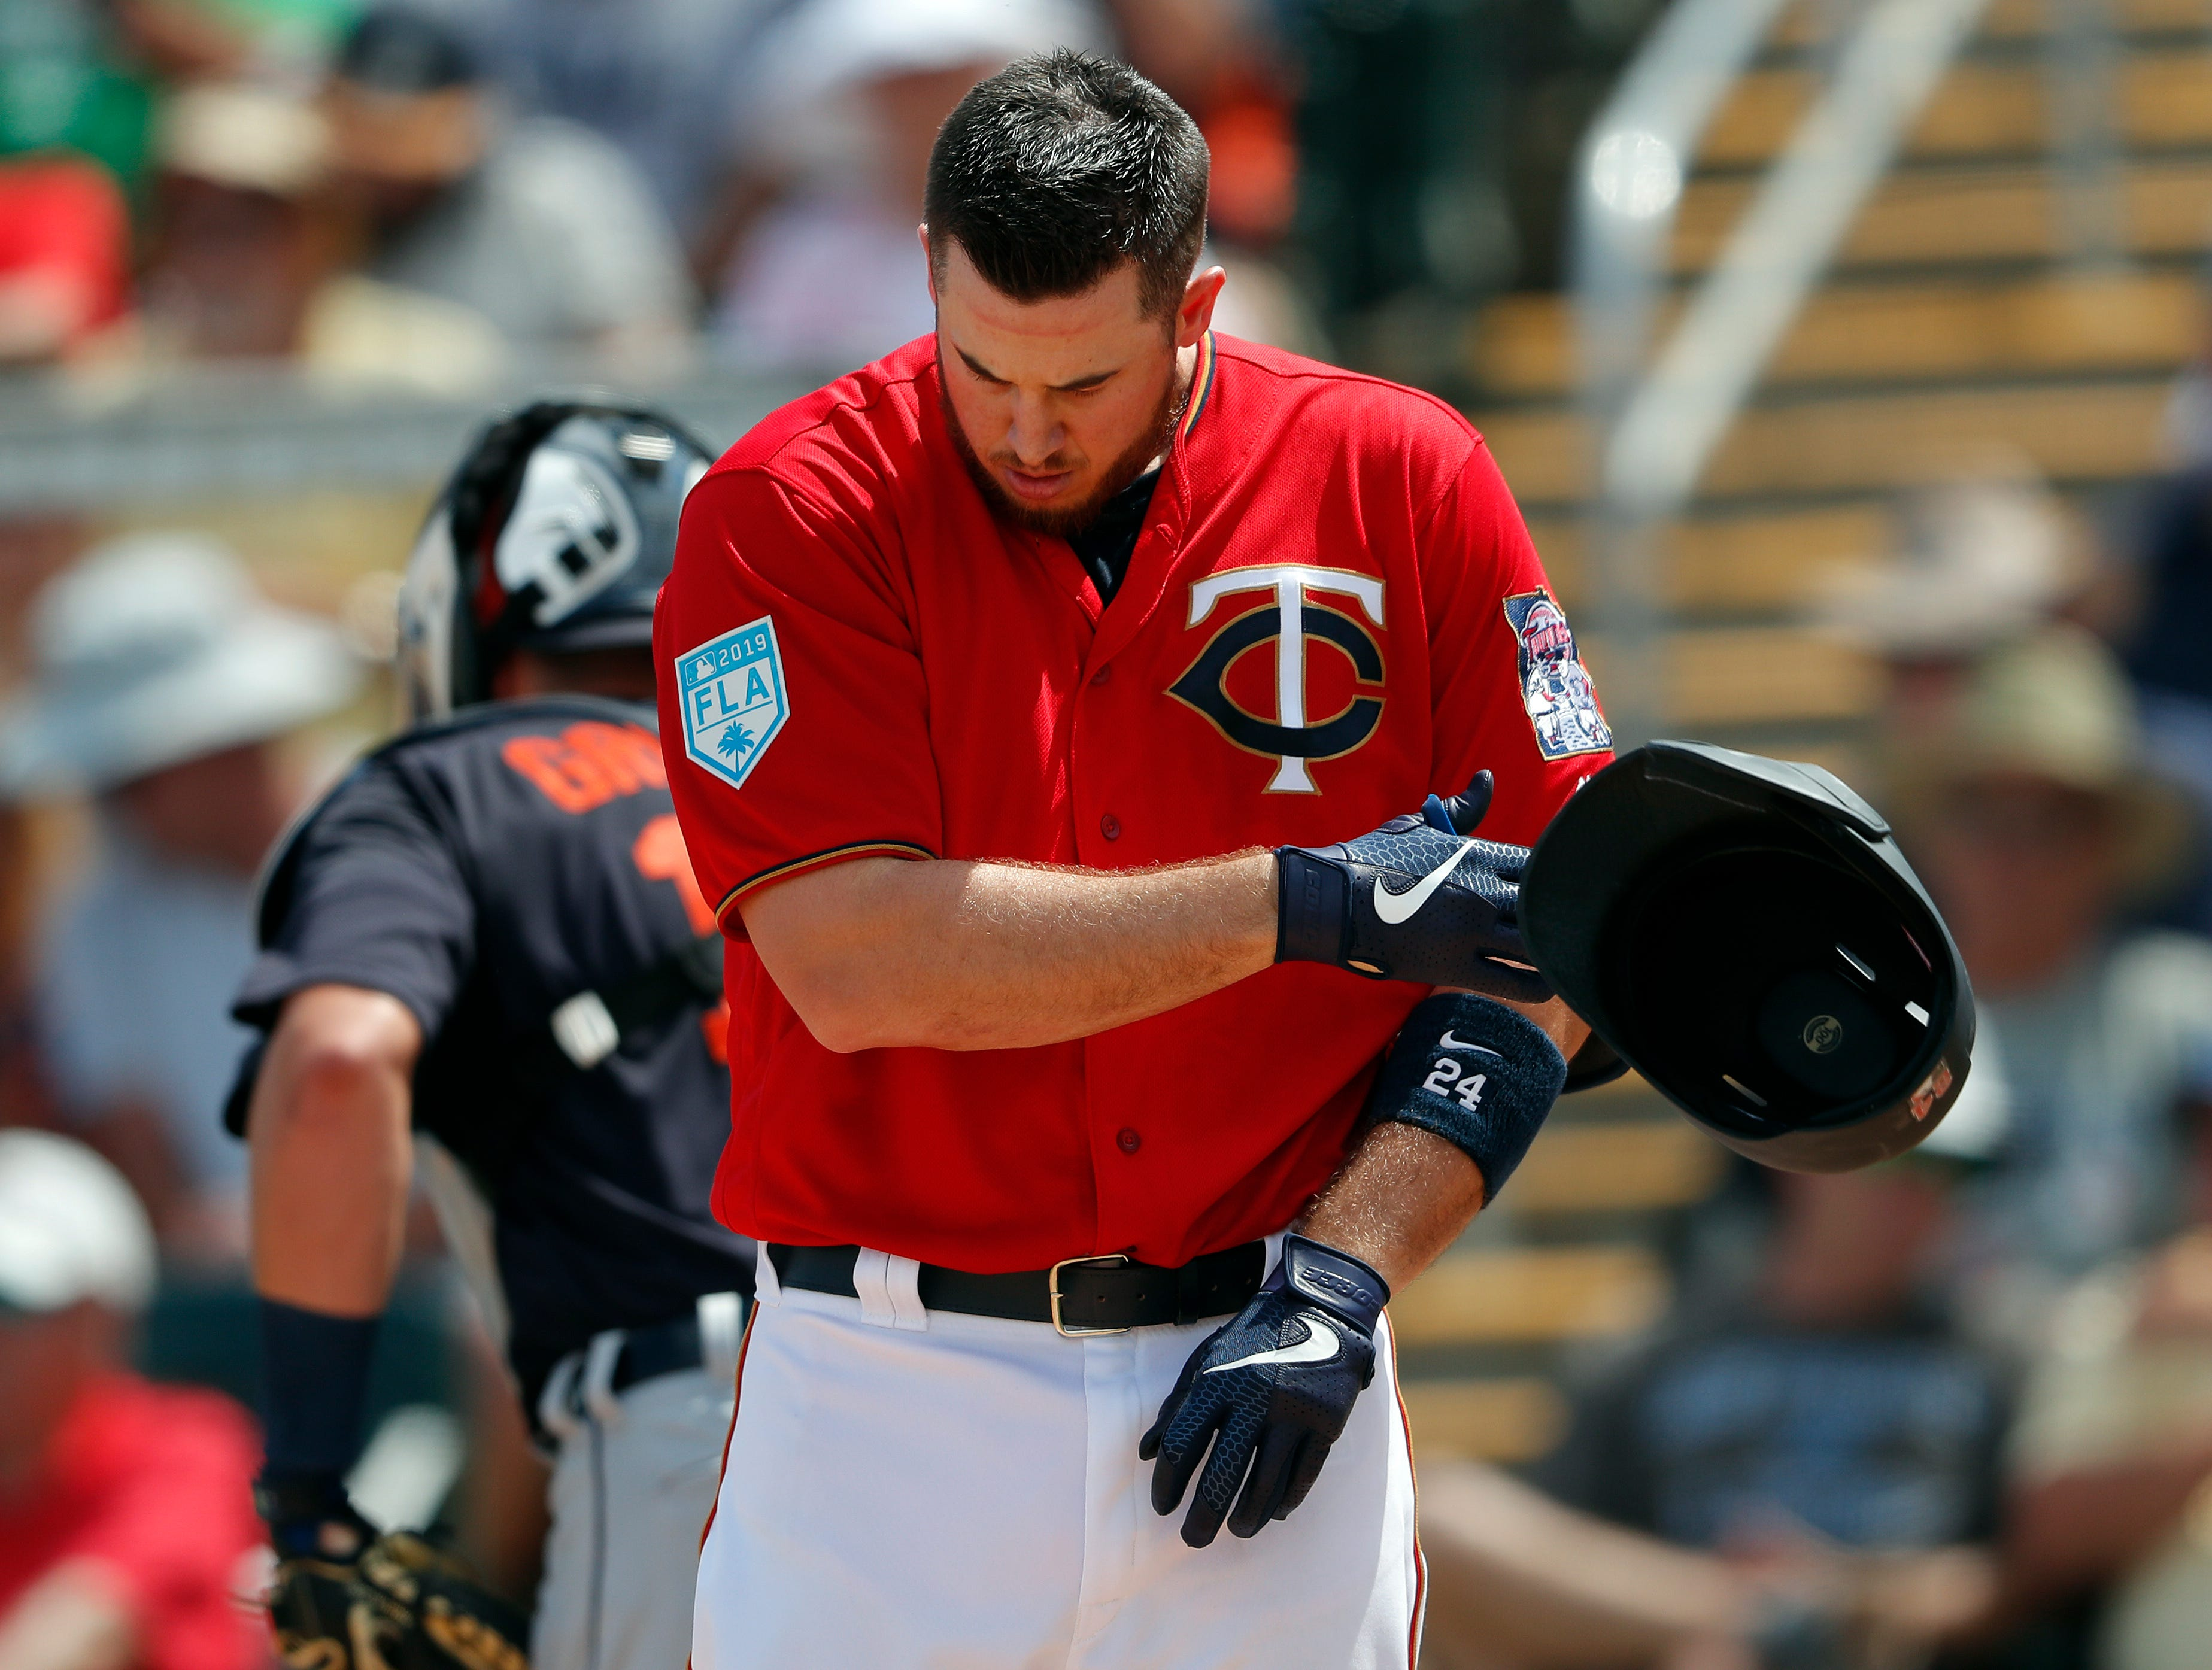 Minnesota Twins first baseman C.J. Cron (24) tosses his helmet after striking out to end the fourth inning of a spring training baseball game against the Detroit Tigers Monday, March 11, 2019, in Fort Myers, Fla.